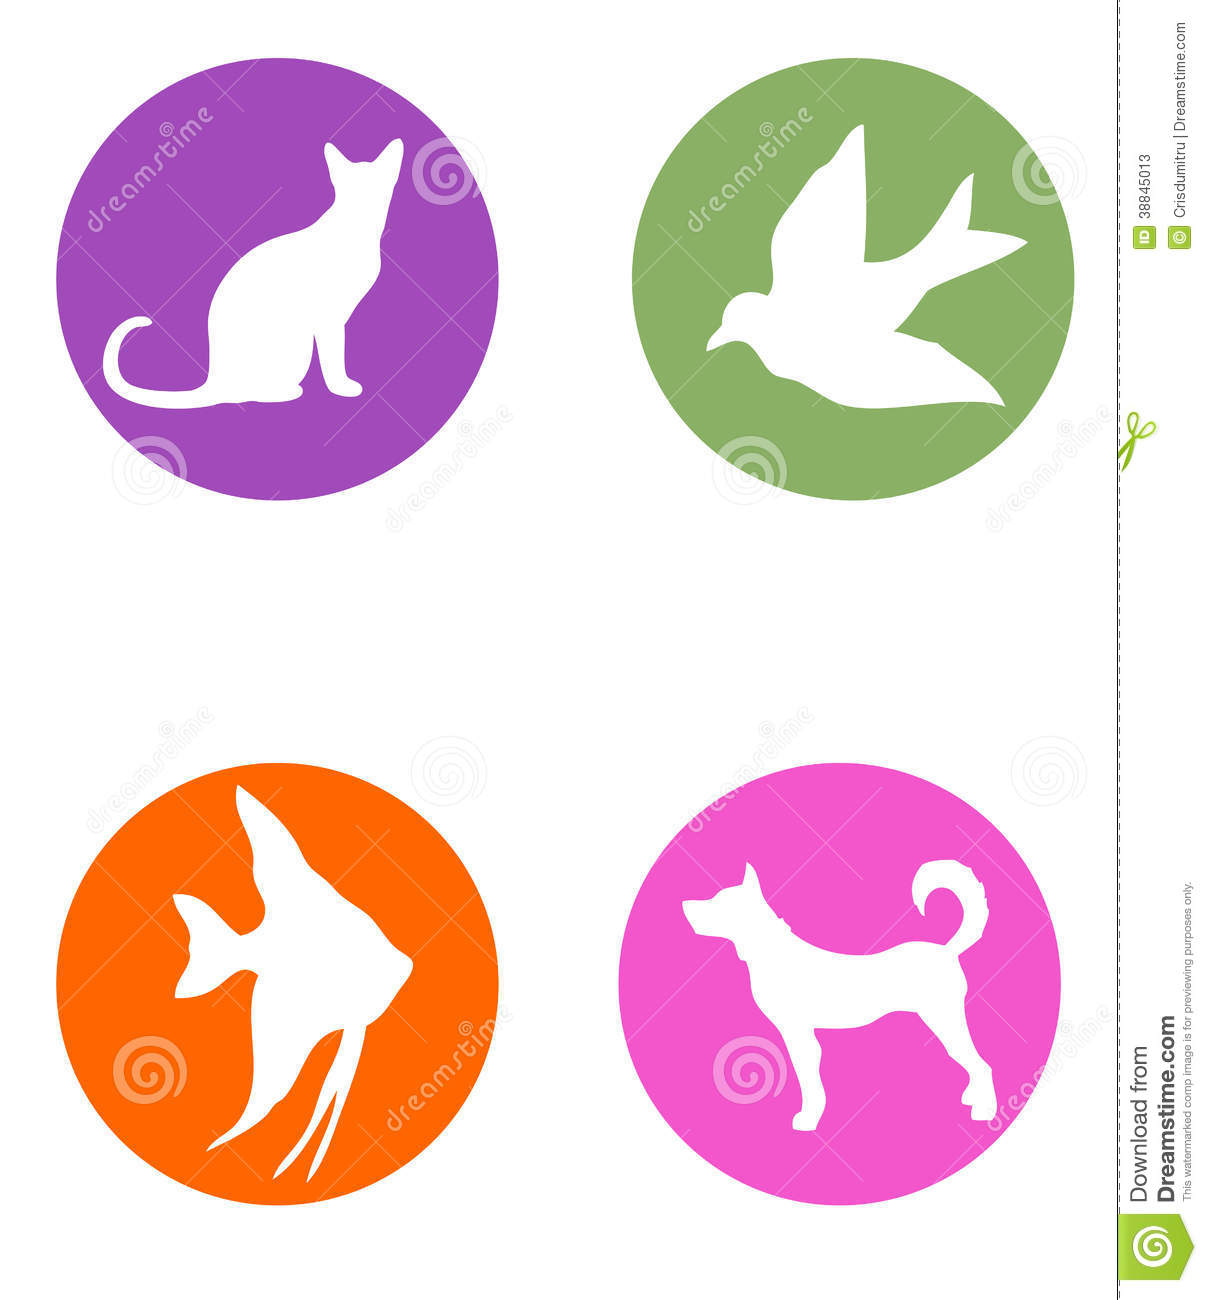 Pet Shop Logos Stock Illustration - Image: 38845013